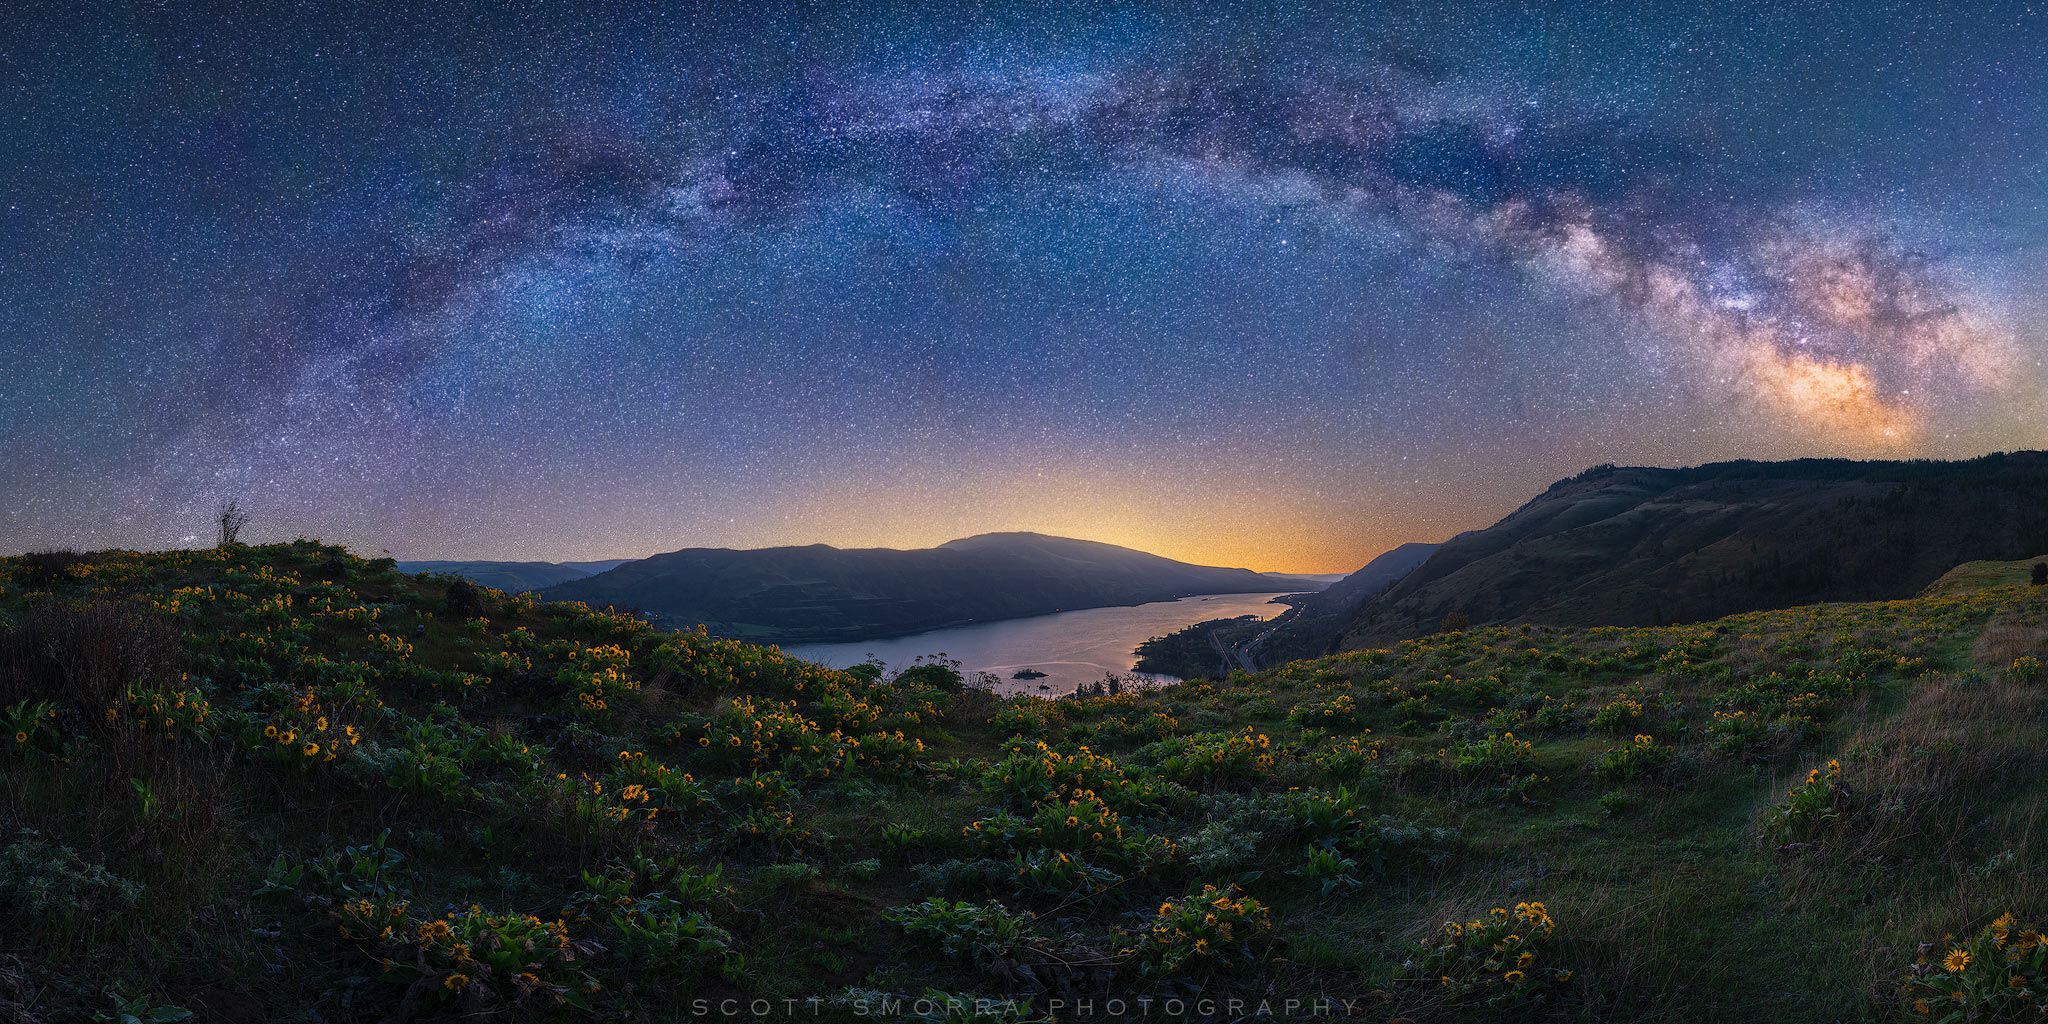 The Milky Way and billions of stars shine above the Columbia River Gorge in Oregon in this springtime panoramic photo.